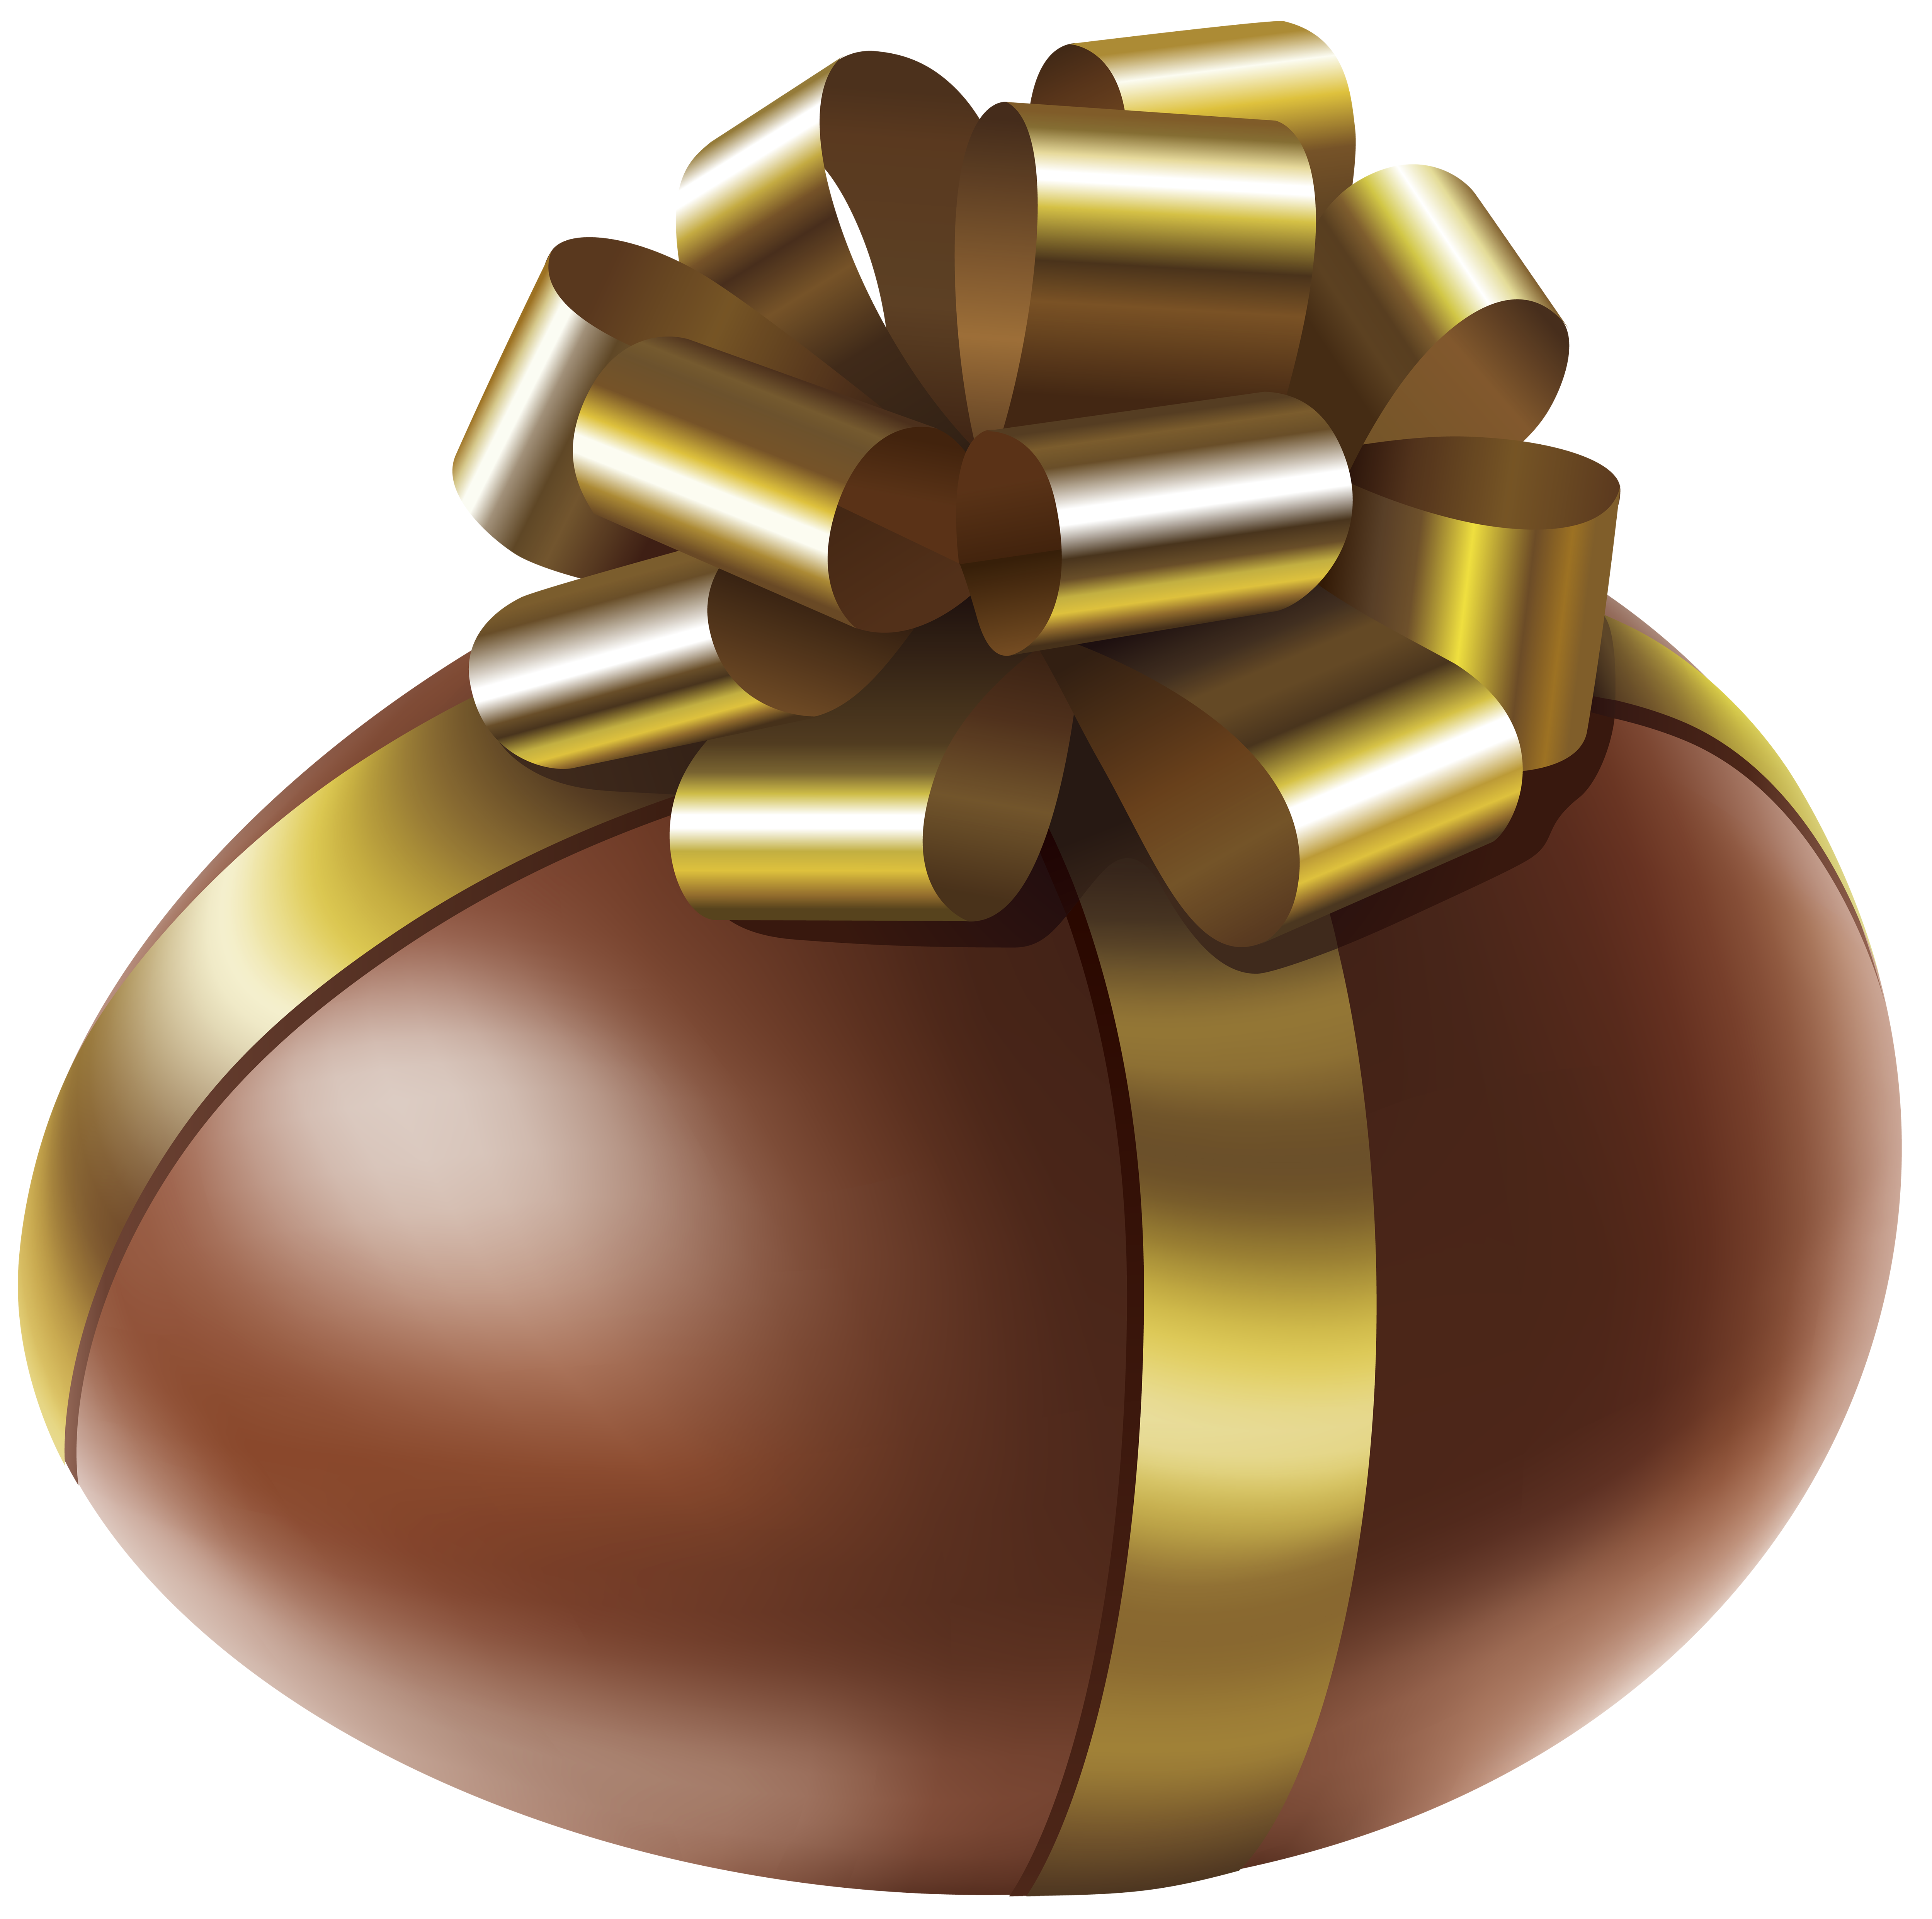 Golden easter egg clipart png svg transparent library Easter Chocolate Egg with Gold Bow Transparent PNG Clip Art Image svg transparent library